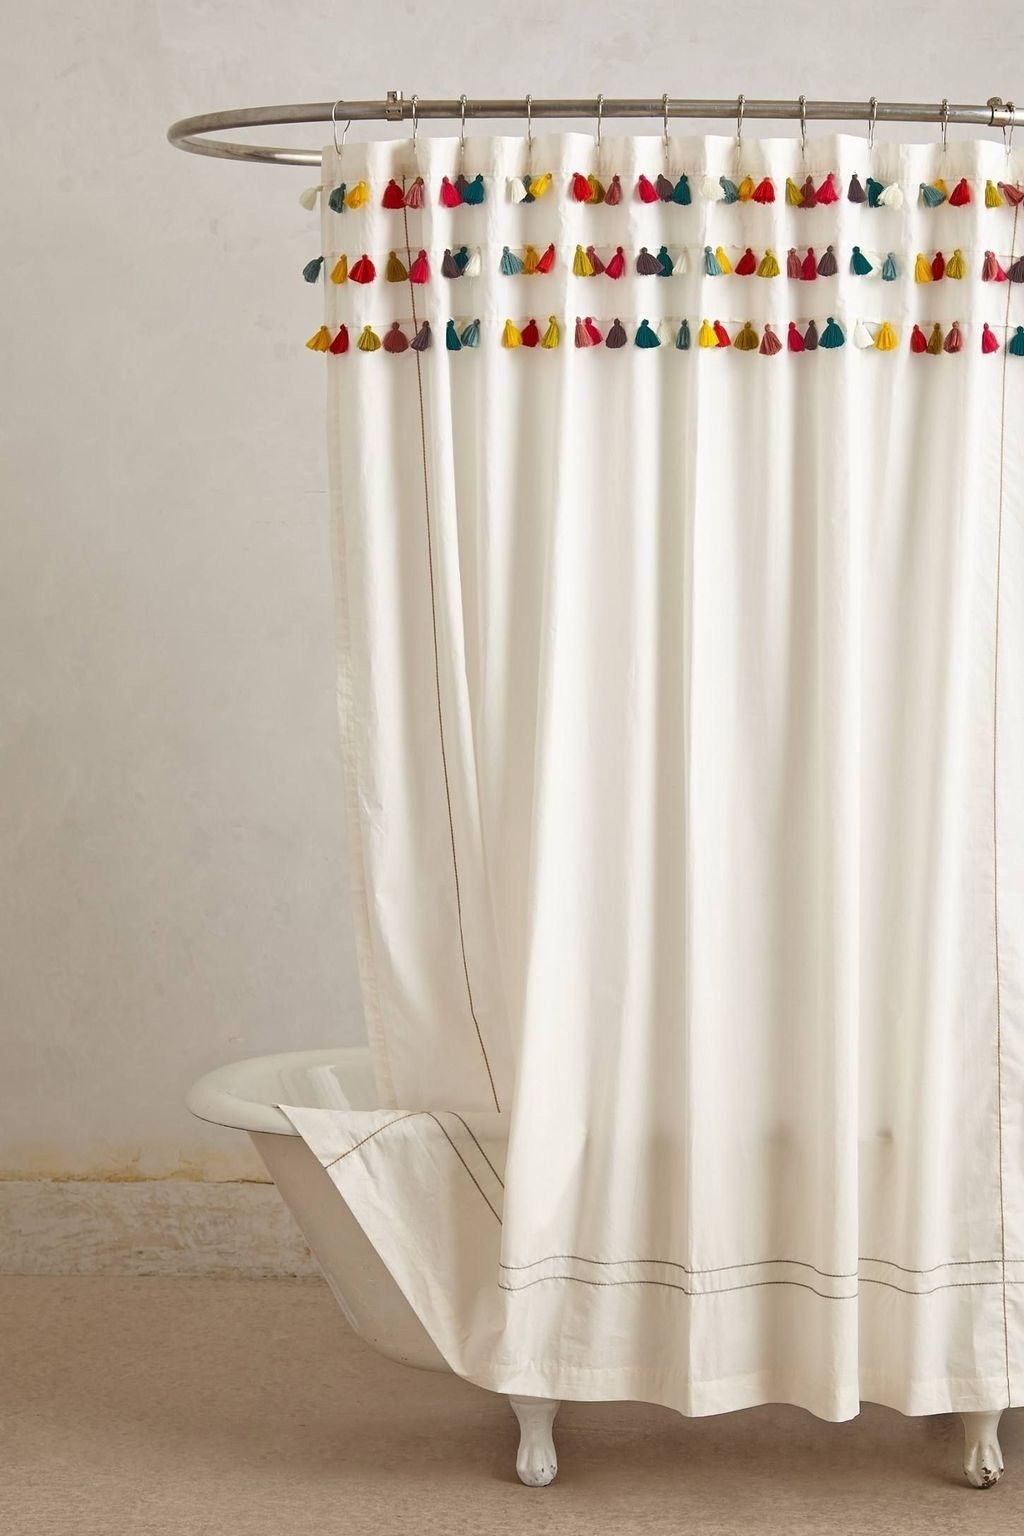 20 Fancy Shower Curtain Ideas With Images Fancy Shower